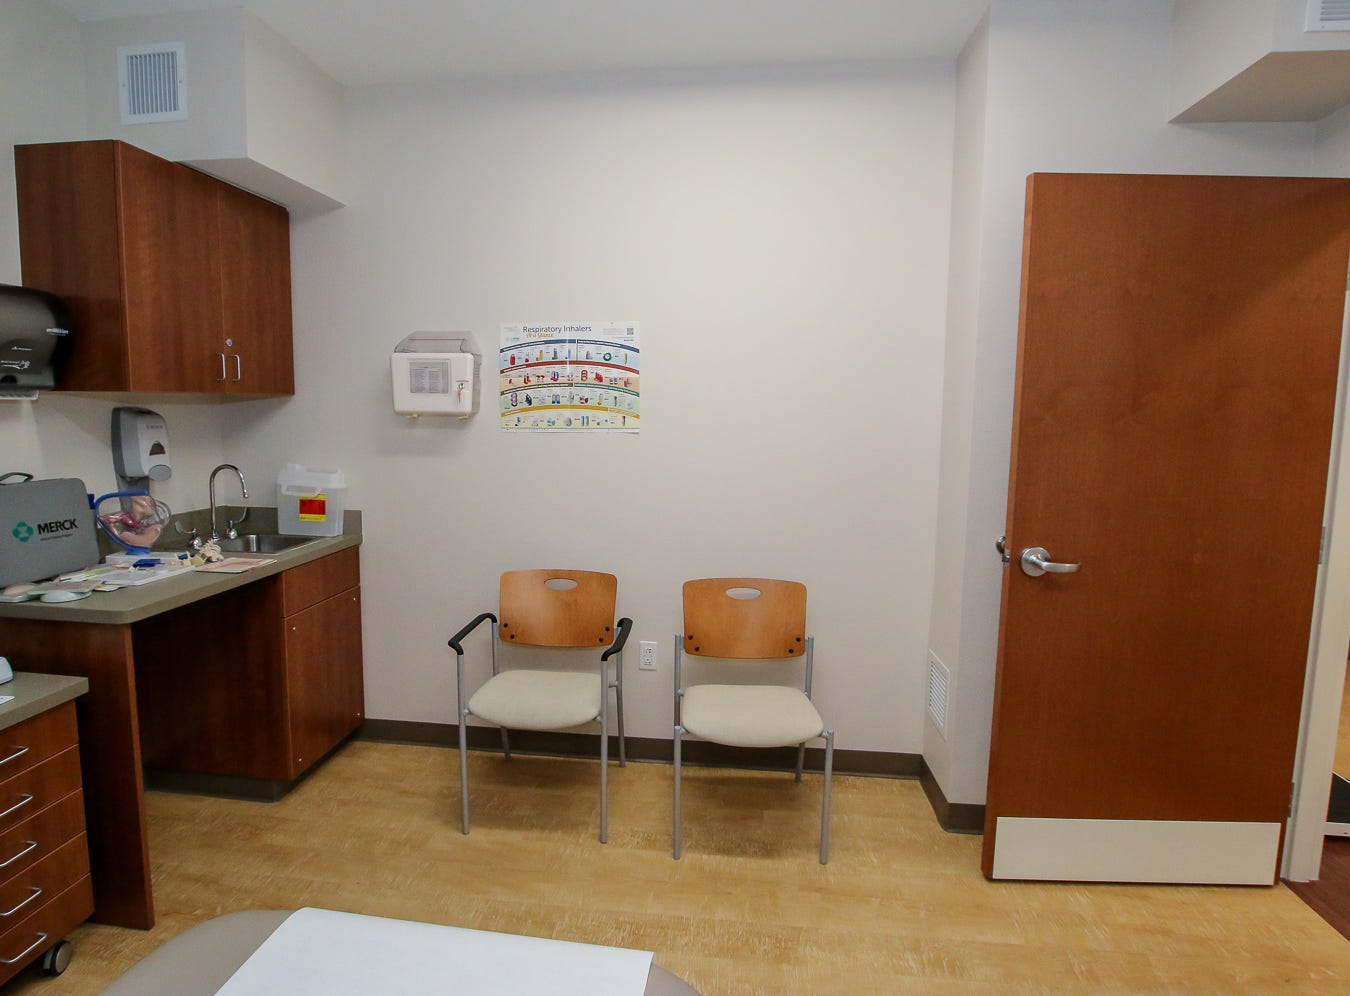 One of the patient rooms in Baptist Medical Group's new Convenient Care Southtowne walk-in clinic in downtown Pensacola is shown during an open house on Thursday, August 9, 2018. Located across from the YMCA near the S. Tarragona intersection at 190 E. Intendencia St., the clinic will be open from 8 a.m. to 5 p.m. Monday through Friday.